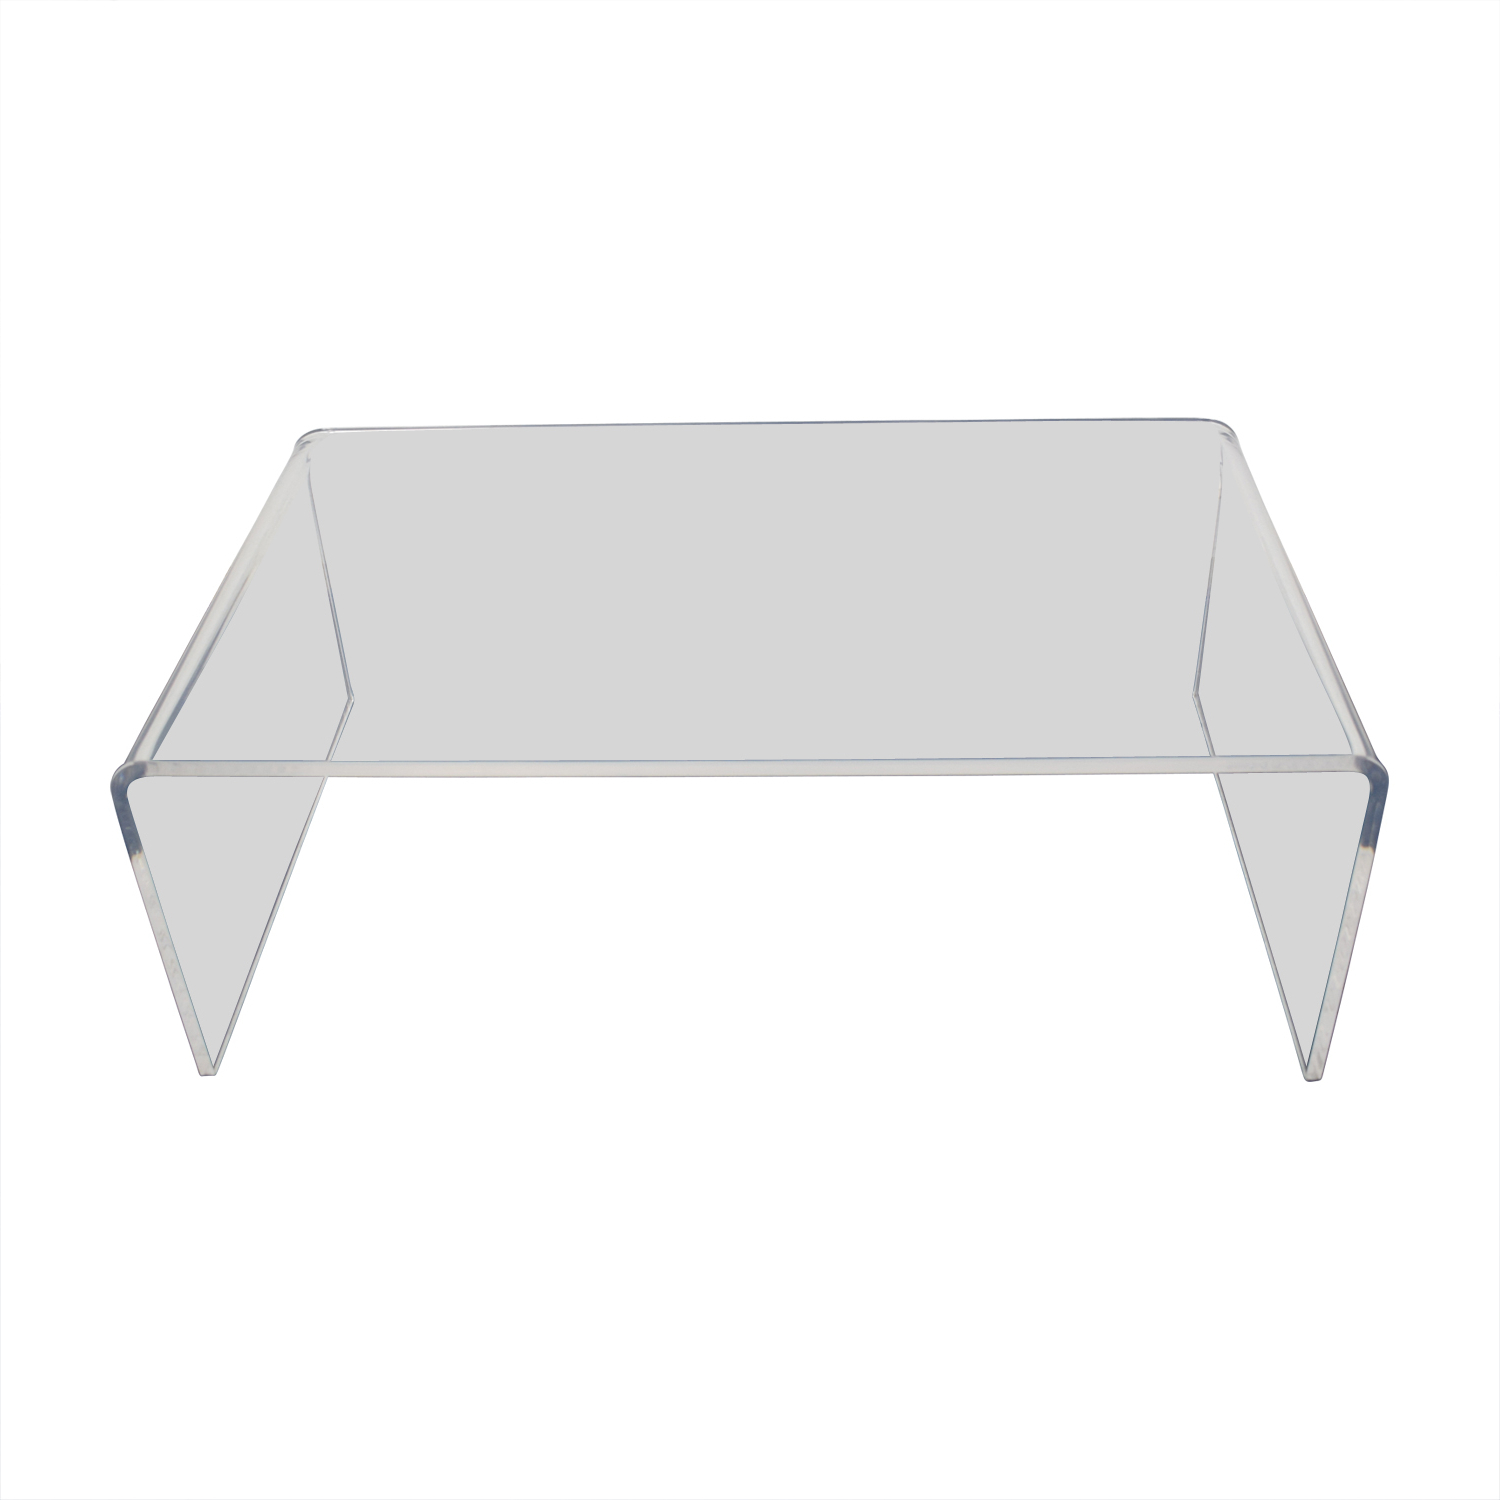 [%90% Off – West Elm West Elm Silver Coffee Table / Tables For Most Popular Peekaboo Acrylic Tall Coffee Tables|peekaboo Acrylic Tall Coffee Tables Regarding Current 90% Off – West Elm West Elm Silver Coffee Table / Tables|popular Peekaboo Acrylic Tall Coffee Tables Pertaining To 90% Off – West Elm West Elm Silver Coffee Table / Tables|well Known 90% Off – West Elm West Elm Silver Coffee Table / Tables Pertaining To Peekaboo Acrylic Tall Coffee Tables%] (View 7 of 20)